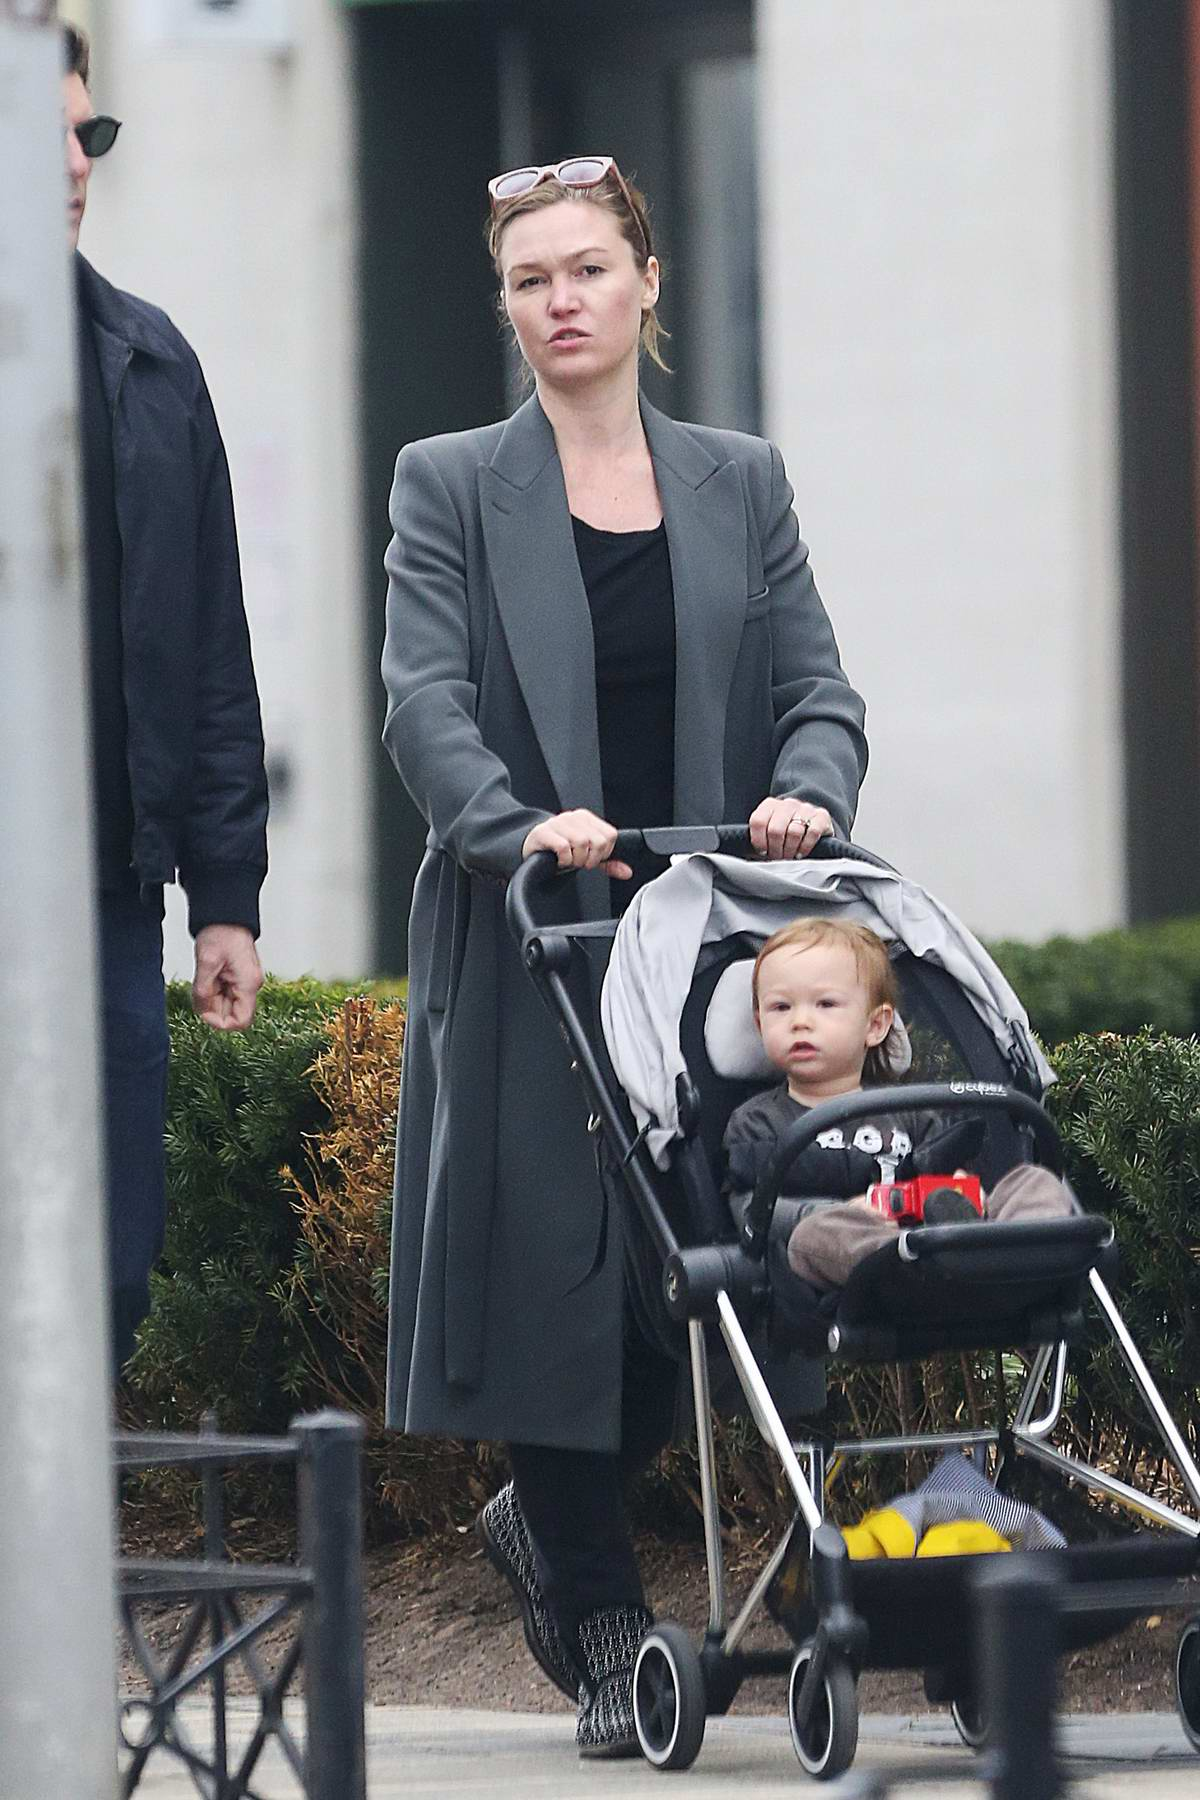 Julia Stiles takes her son for a stroll with a friend in Brooklyn, New York City